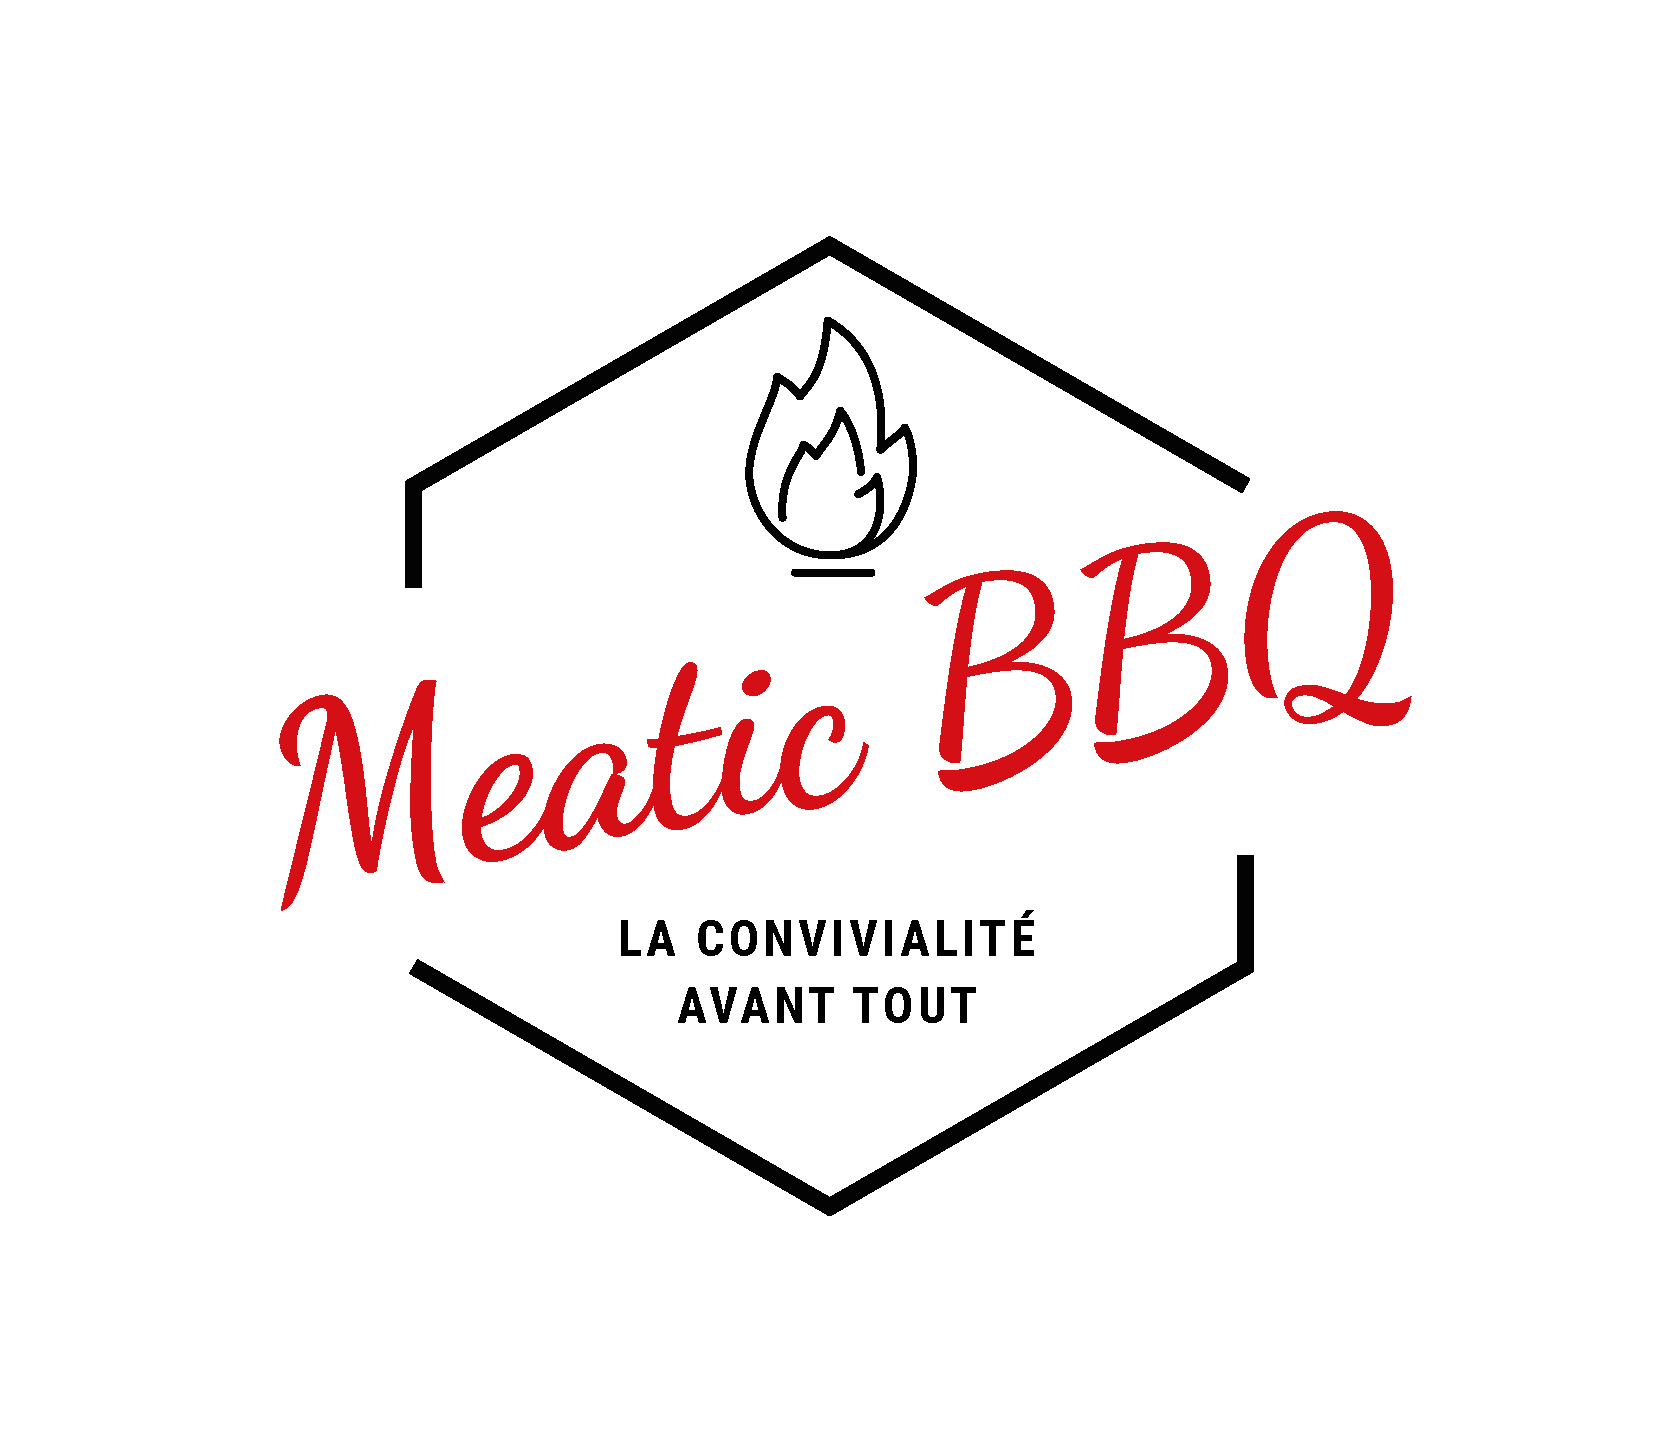 MEATIC BBQ